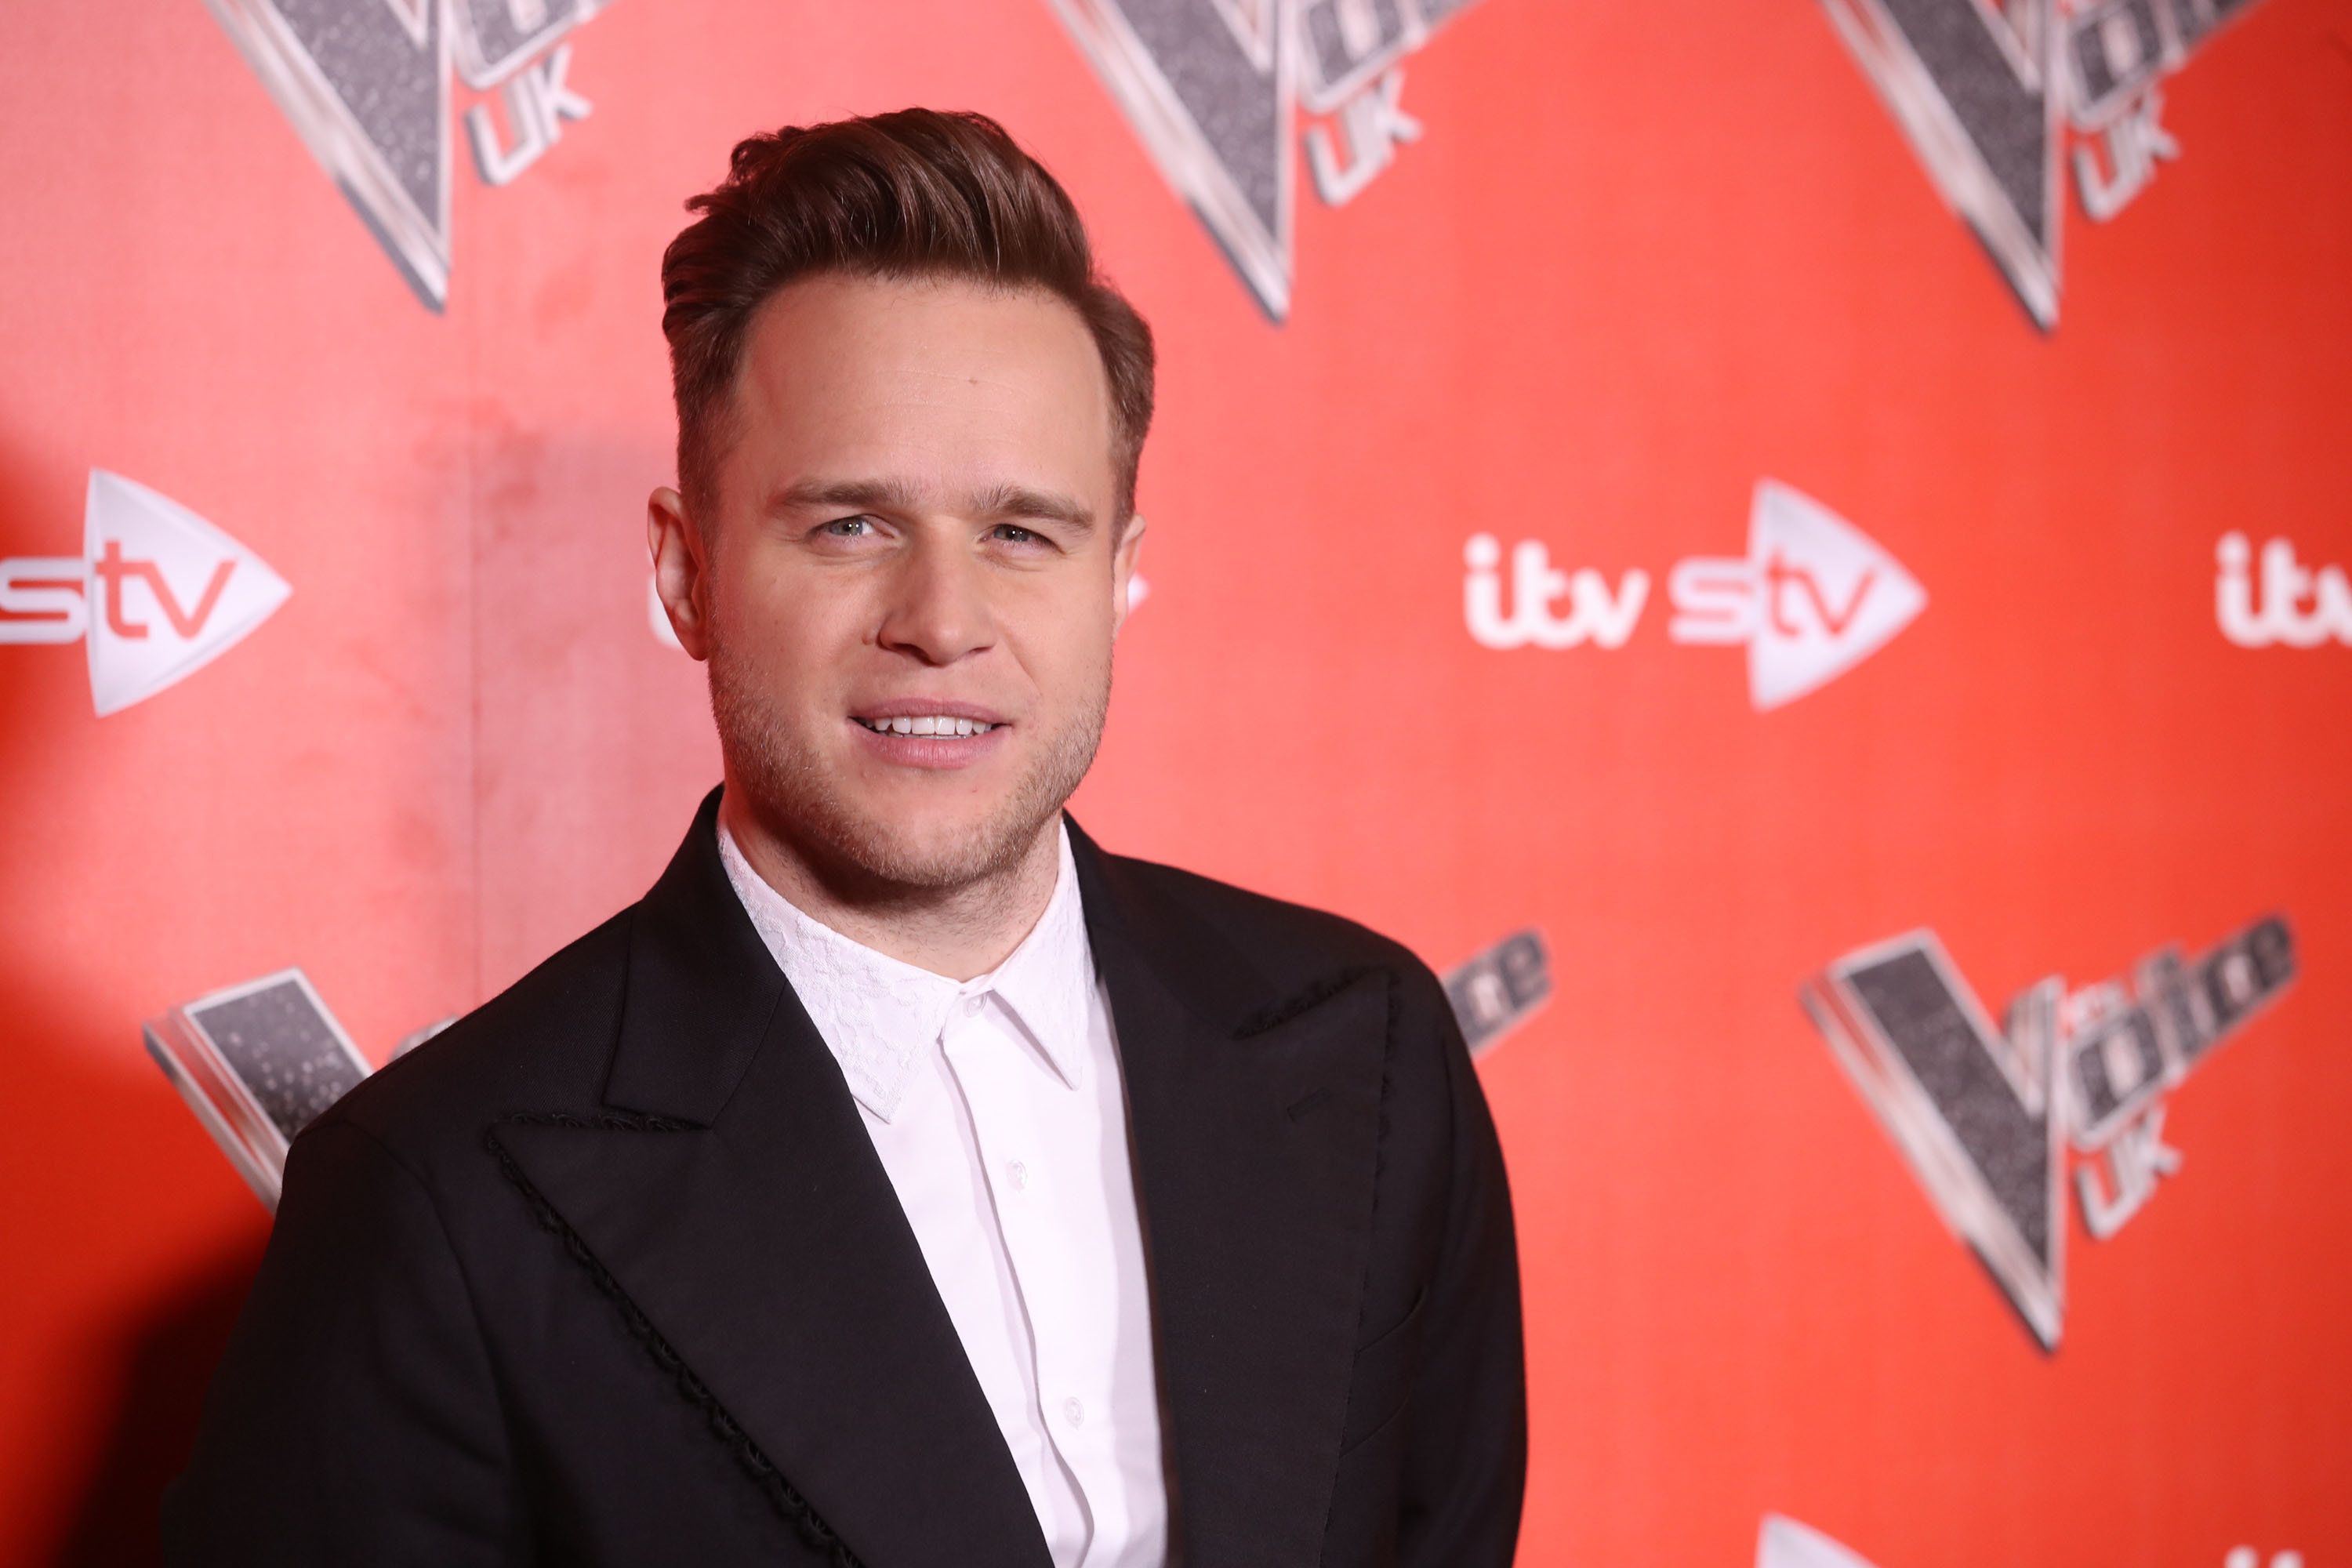 <strong>Olly Murs has jumped ship from 'The X Factor' to 'The Voice'</strong>